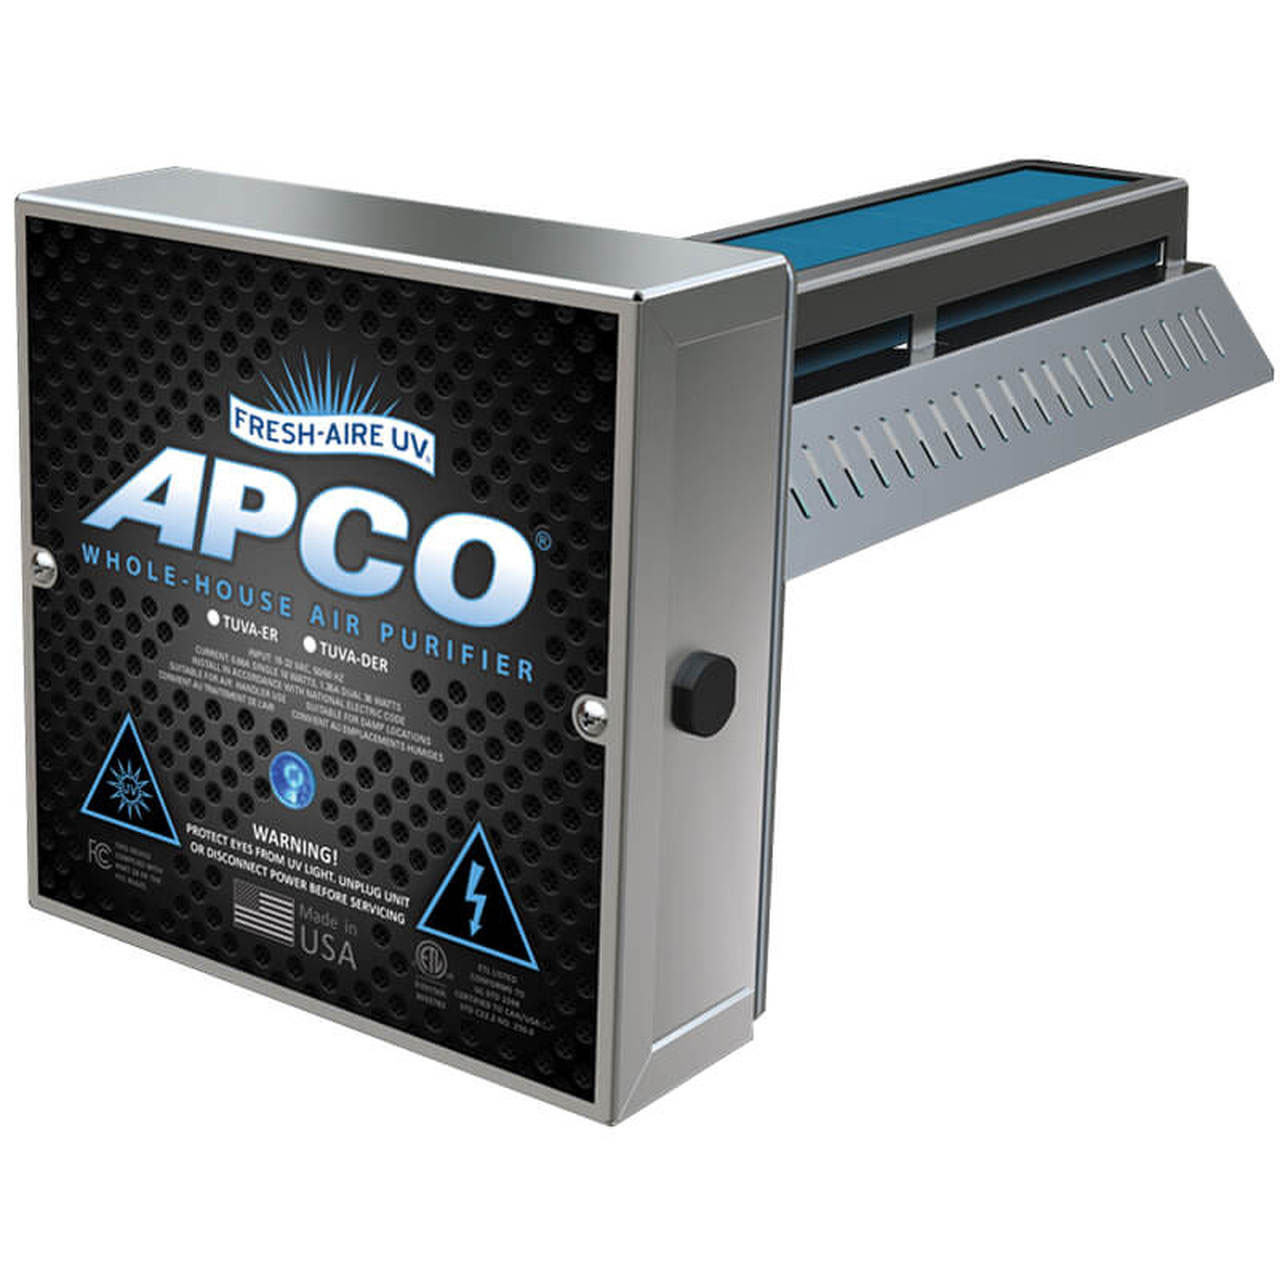 Williamsburg Heating & Air Conditioning carries APCO UV Lighting Systems